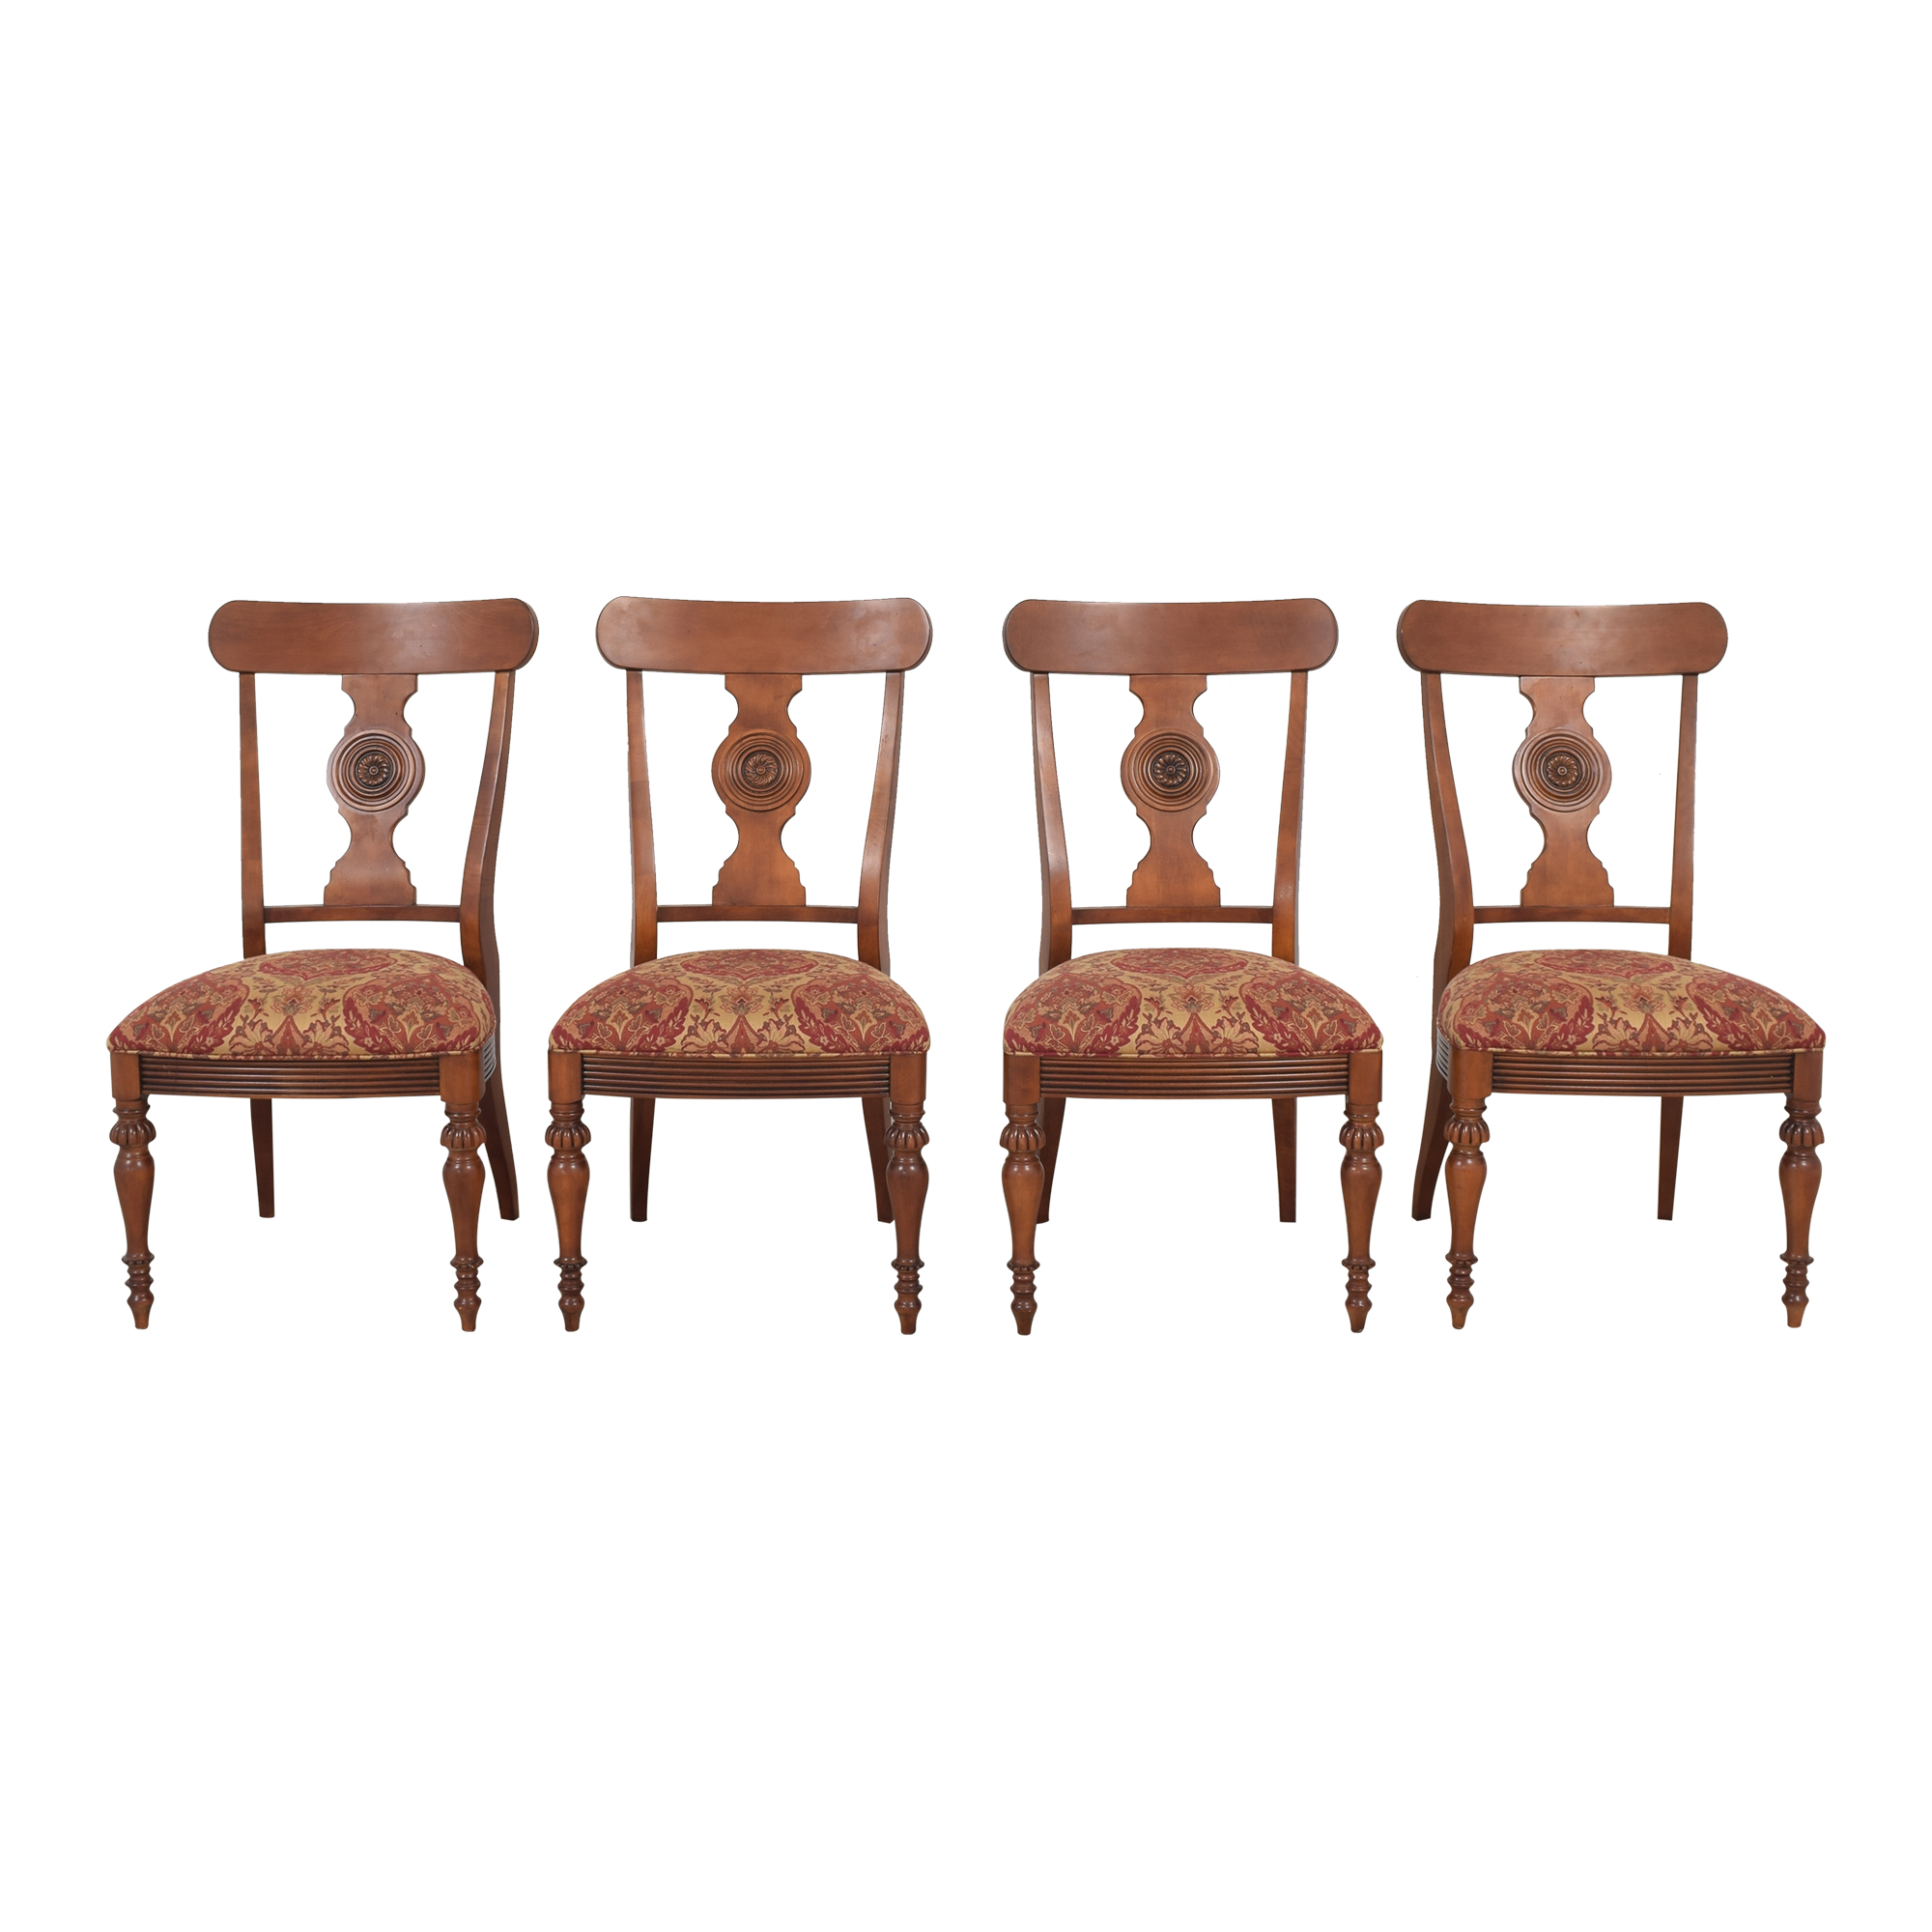 Ethan Allen Ethan Allen British Classic Splatback Dining Chairs brown and red